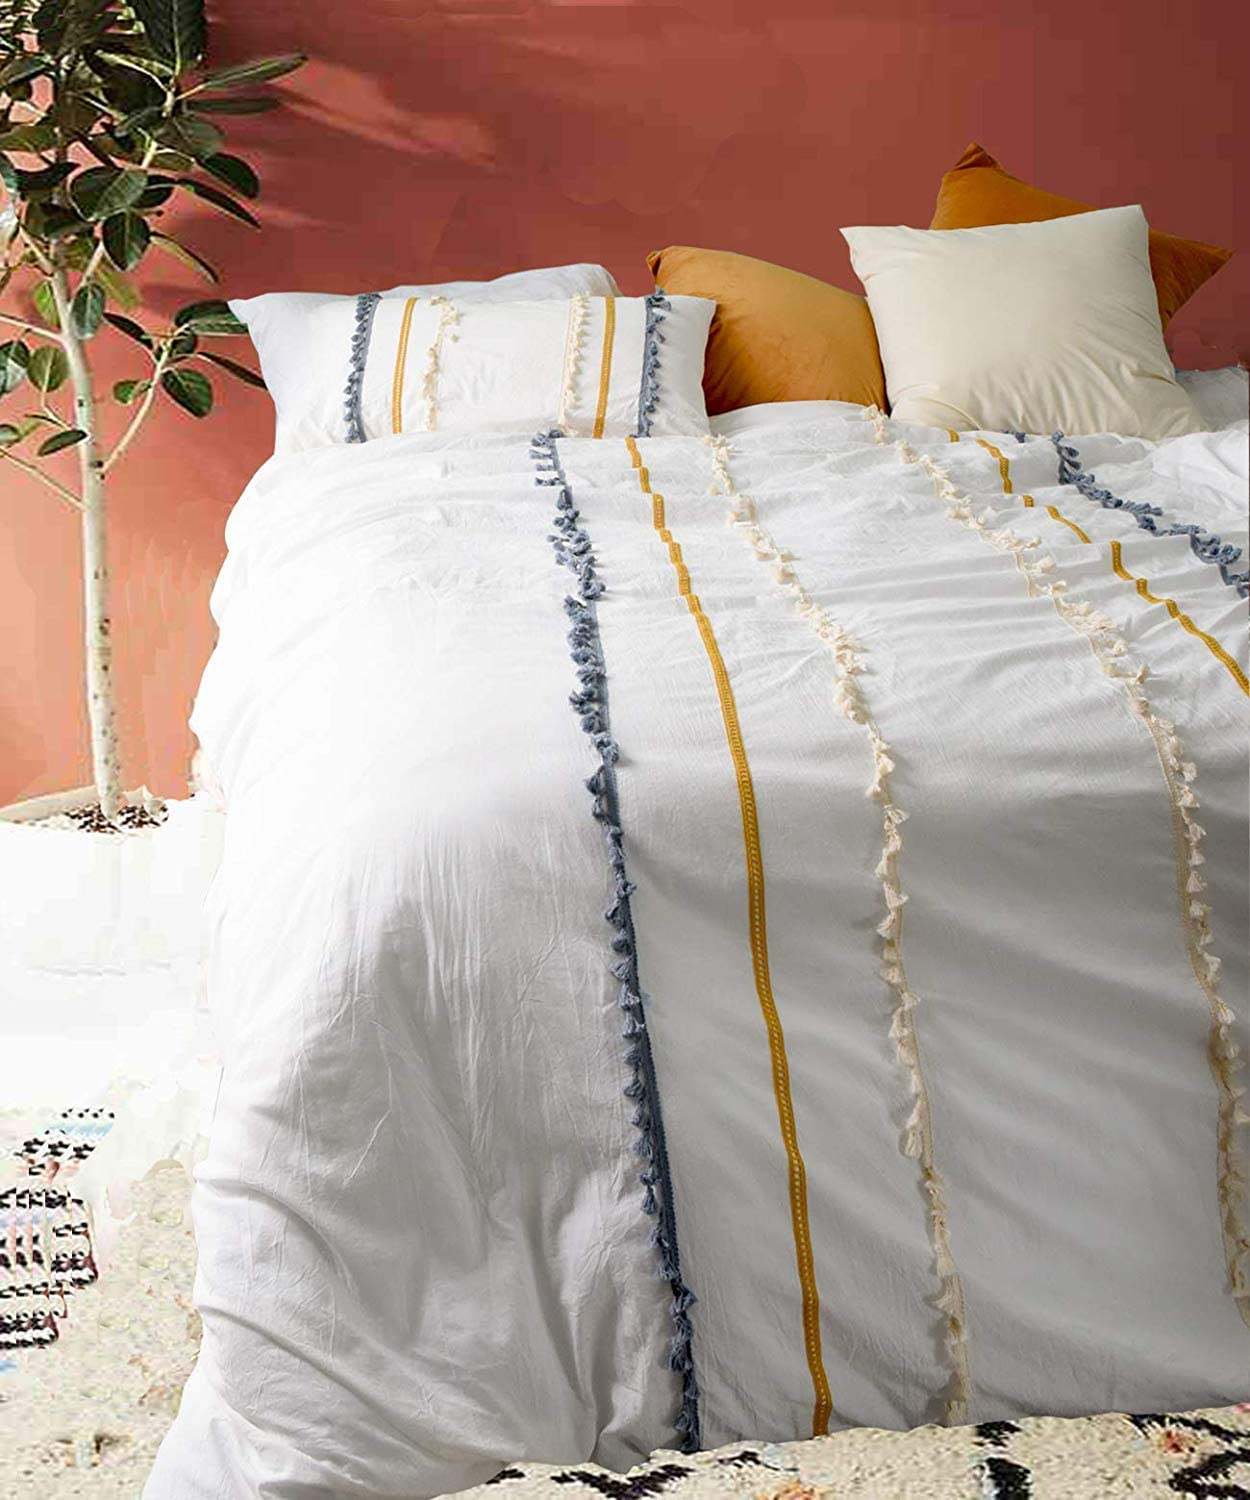 Flber Tasseled Duvet Cover Washed Cotton Boho Bedding King